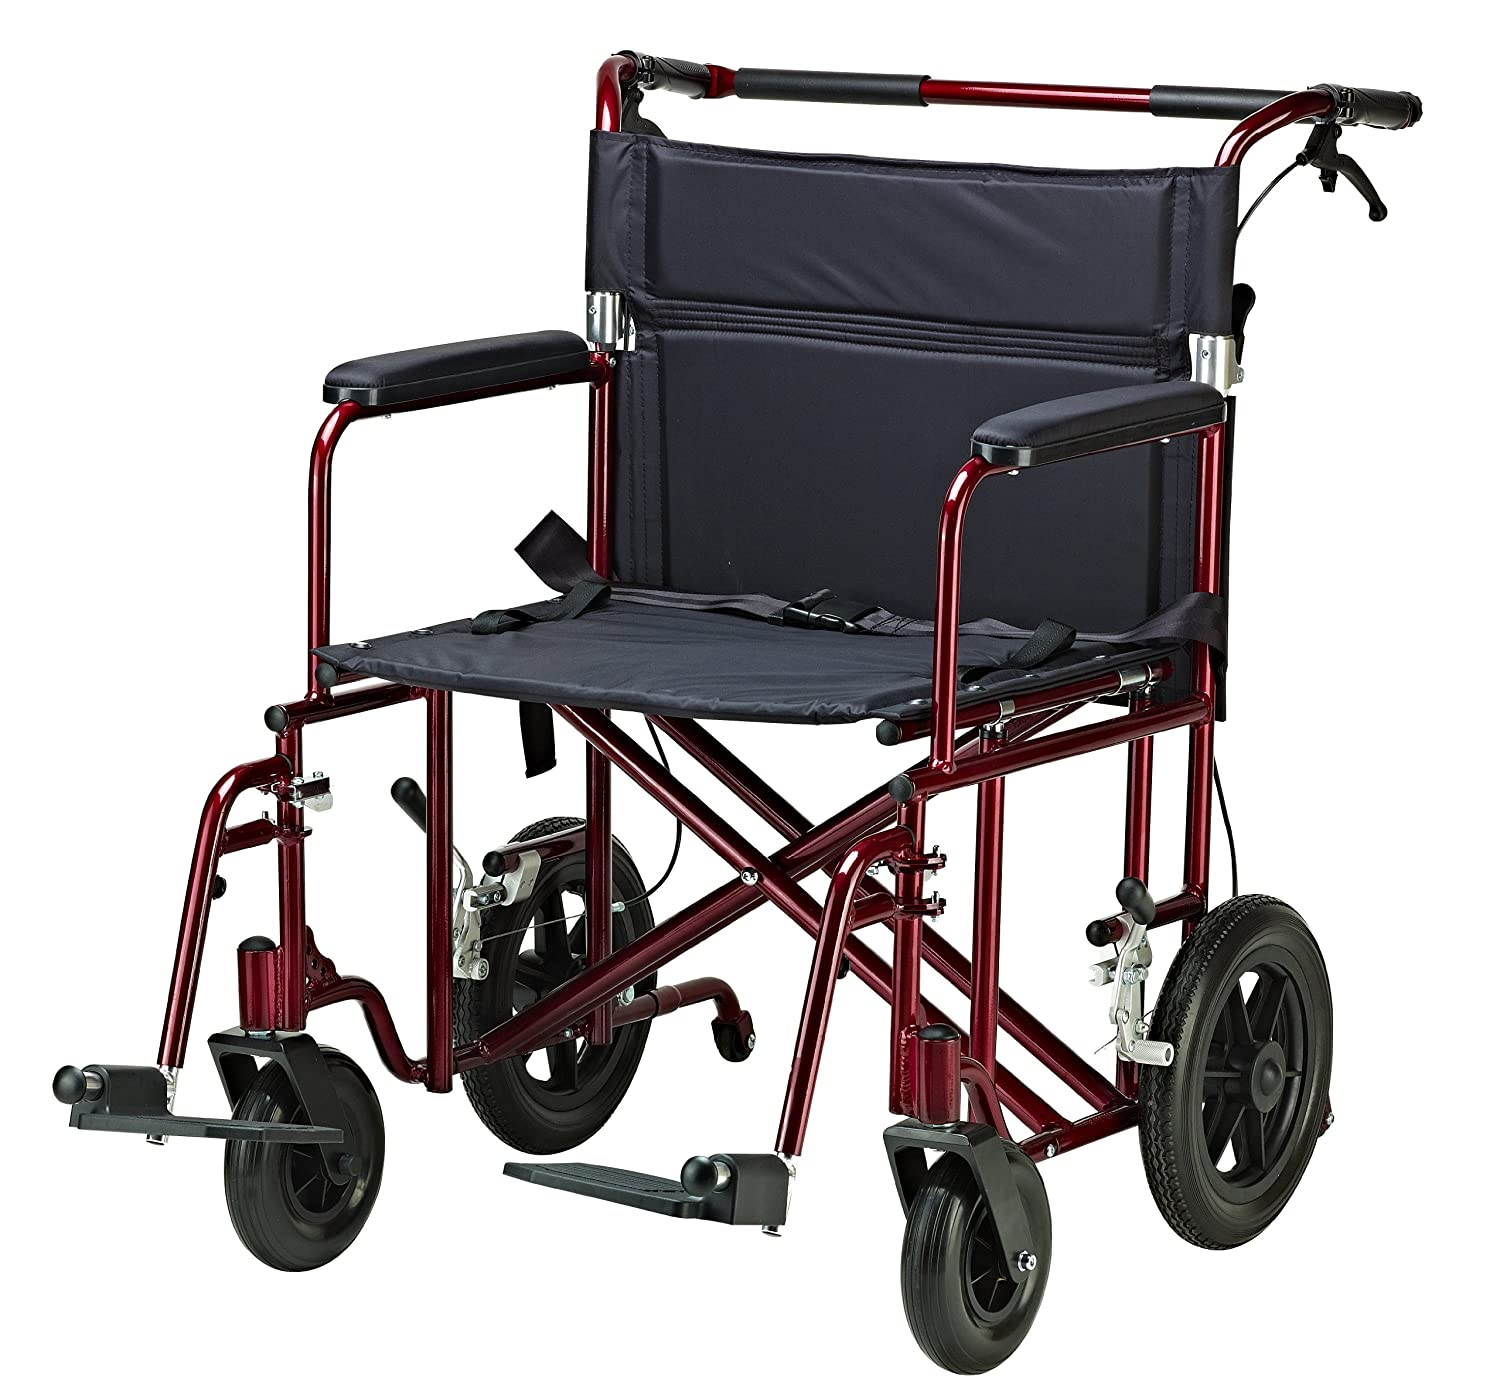 Amazon Drive Medical Bariatric Transport Chair With 12 Inches Rear Flat Free Wheels Red 22 Health Personal Care